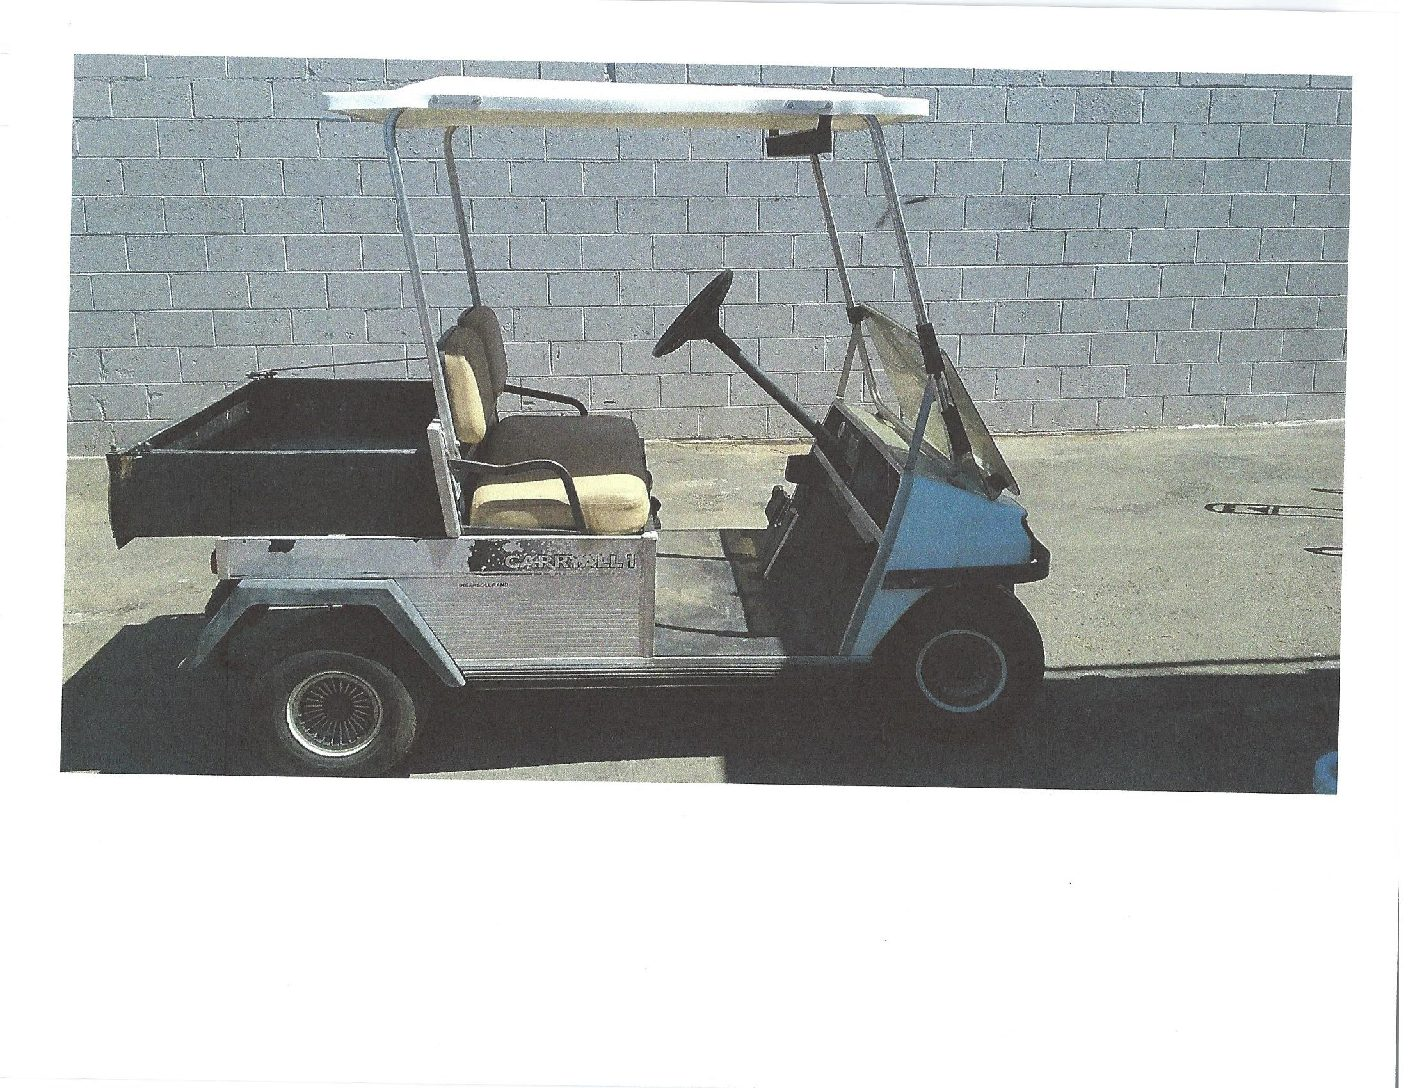 Utility Gas Powered Golf Carts Sale on electric utility carts, gas powered ez go carts, yamaha golf carts, utility work carts, gasoline powered golf carts, electric golf carts, different brands of golf carts, gas powered golf cart drivetrain, gas powered golf cart batteries, custom ez go golf carts, off-road golf carts, gas powered yard carts, yamaha utility carts, battery powered utility carts, taylor golf carts, ezgo utility golf carts, gas yard light parts, custom utility golf carts, used utility carts, flat bed utility golf carts,